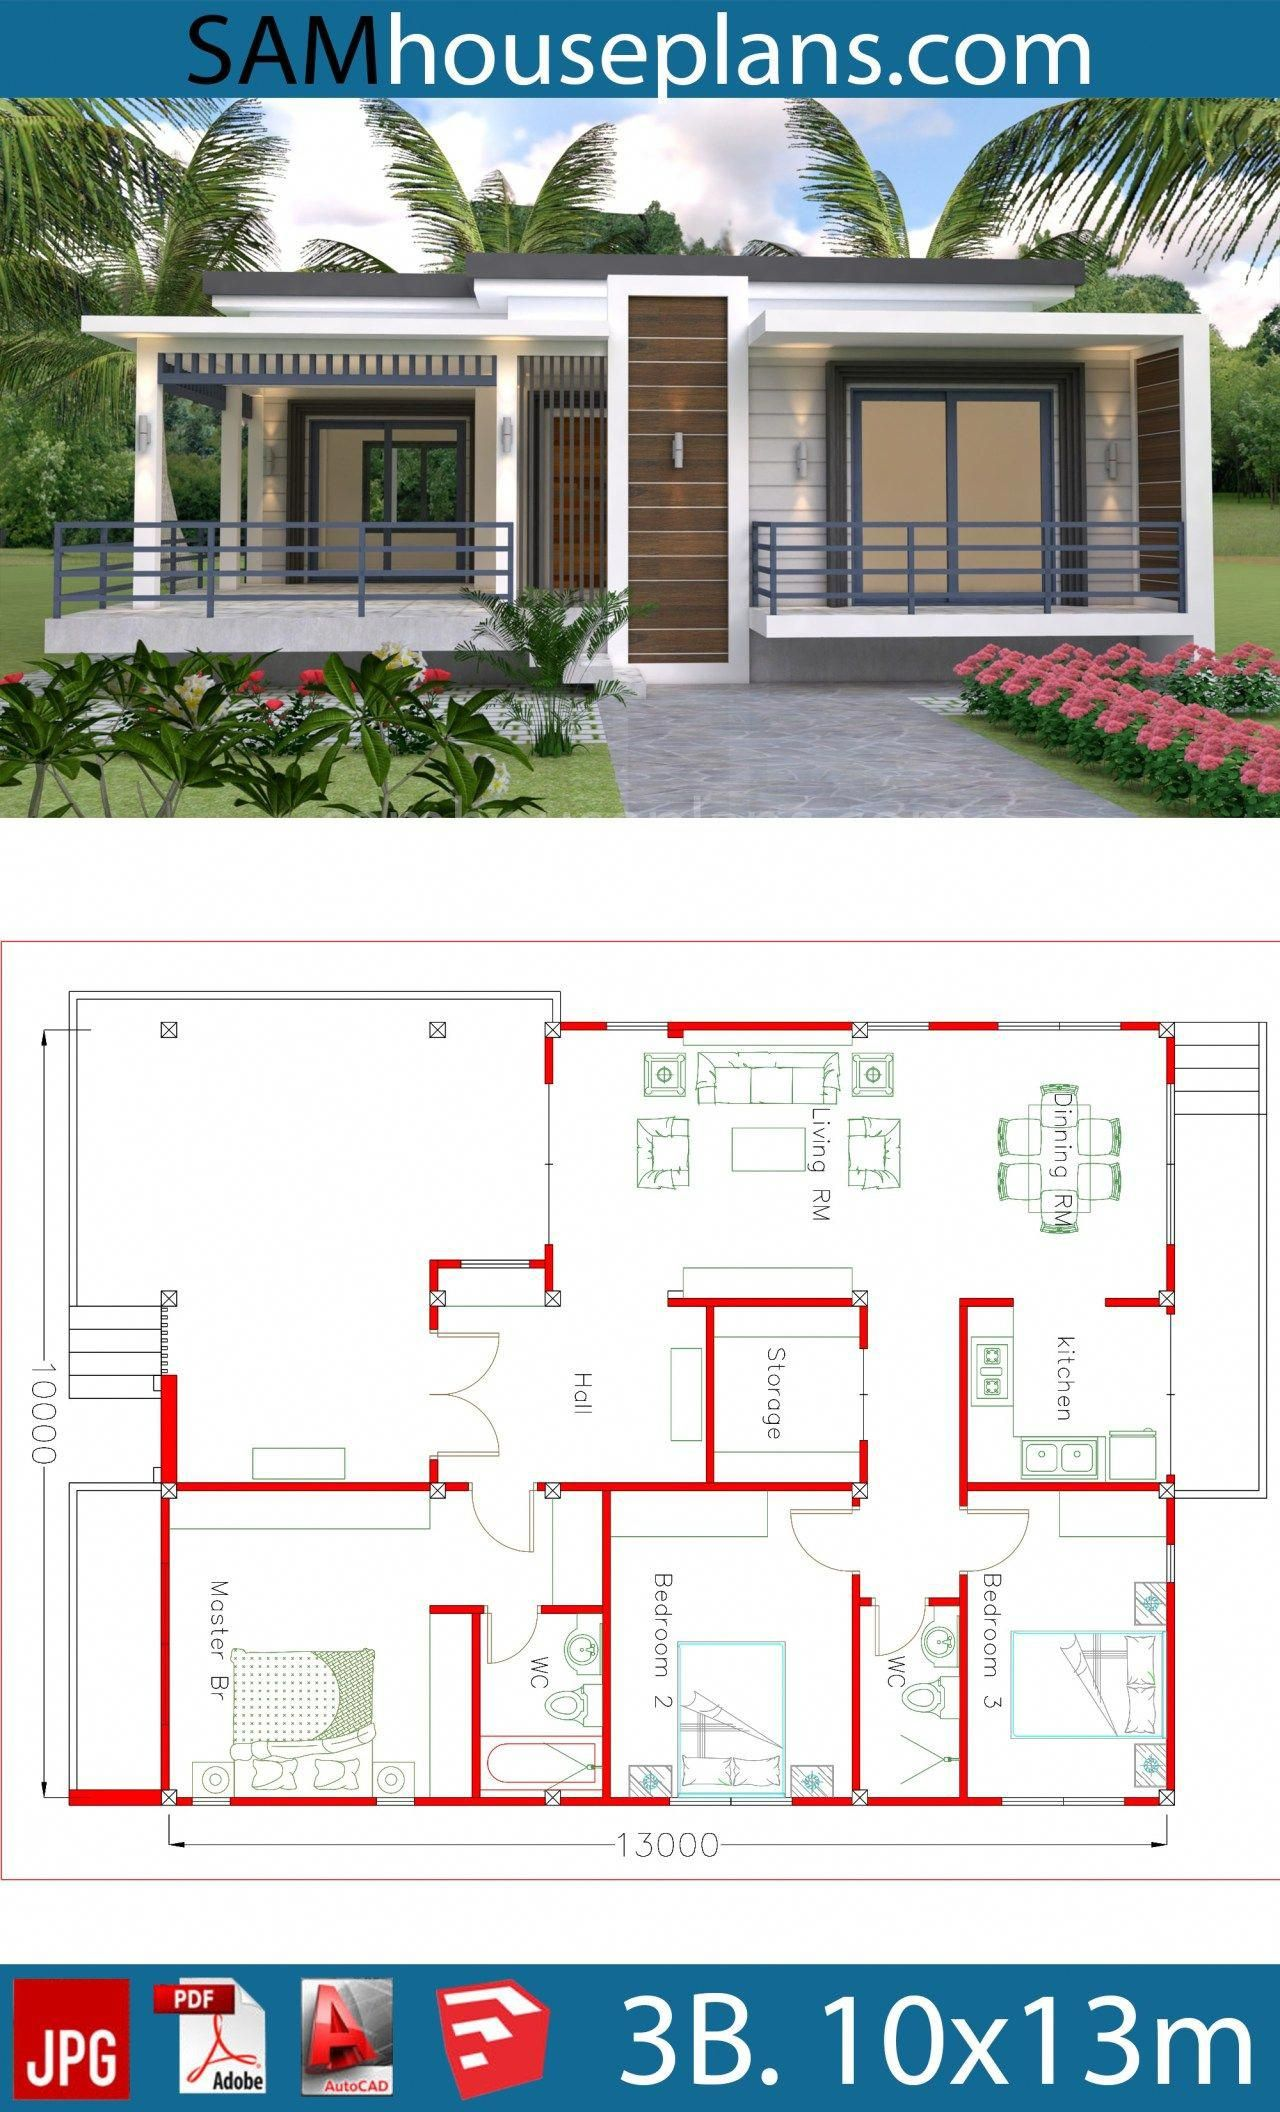 House Plans 10x13m With 3 Bedrooms Sam House Plans Remodelinghouseideas Beautiful House Plans Small Modern House Plans My House Plans